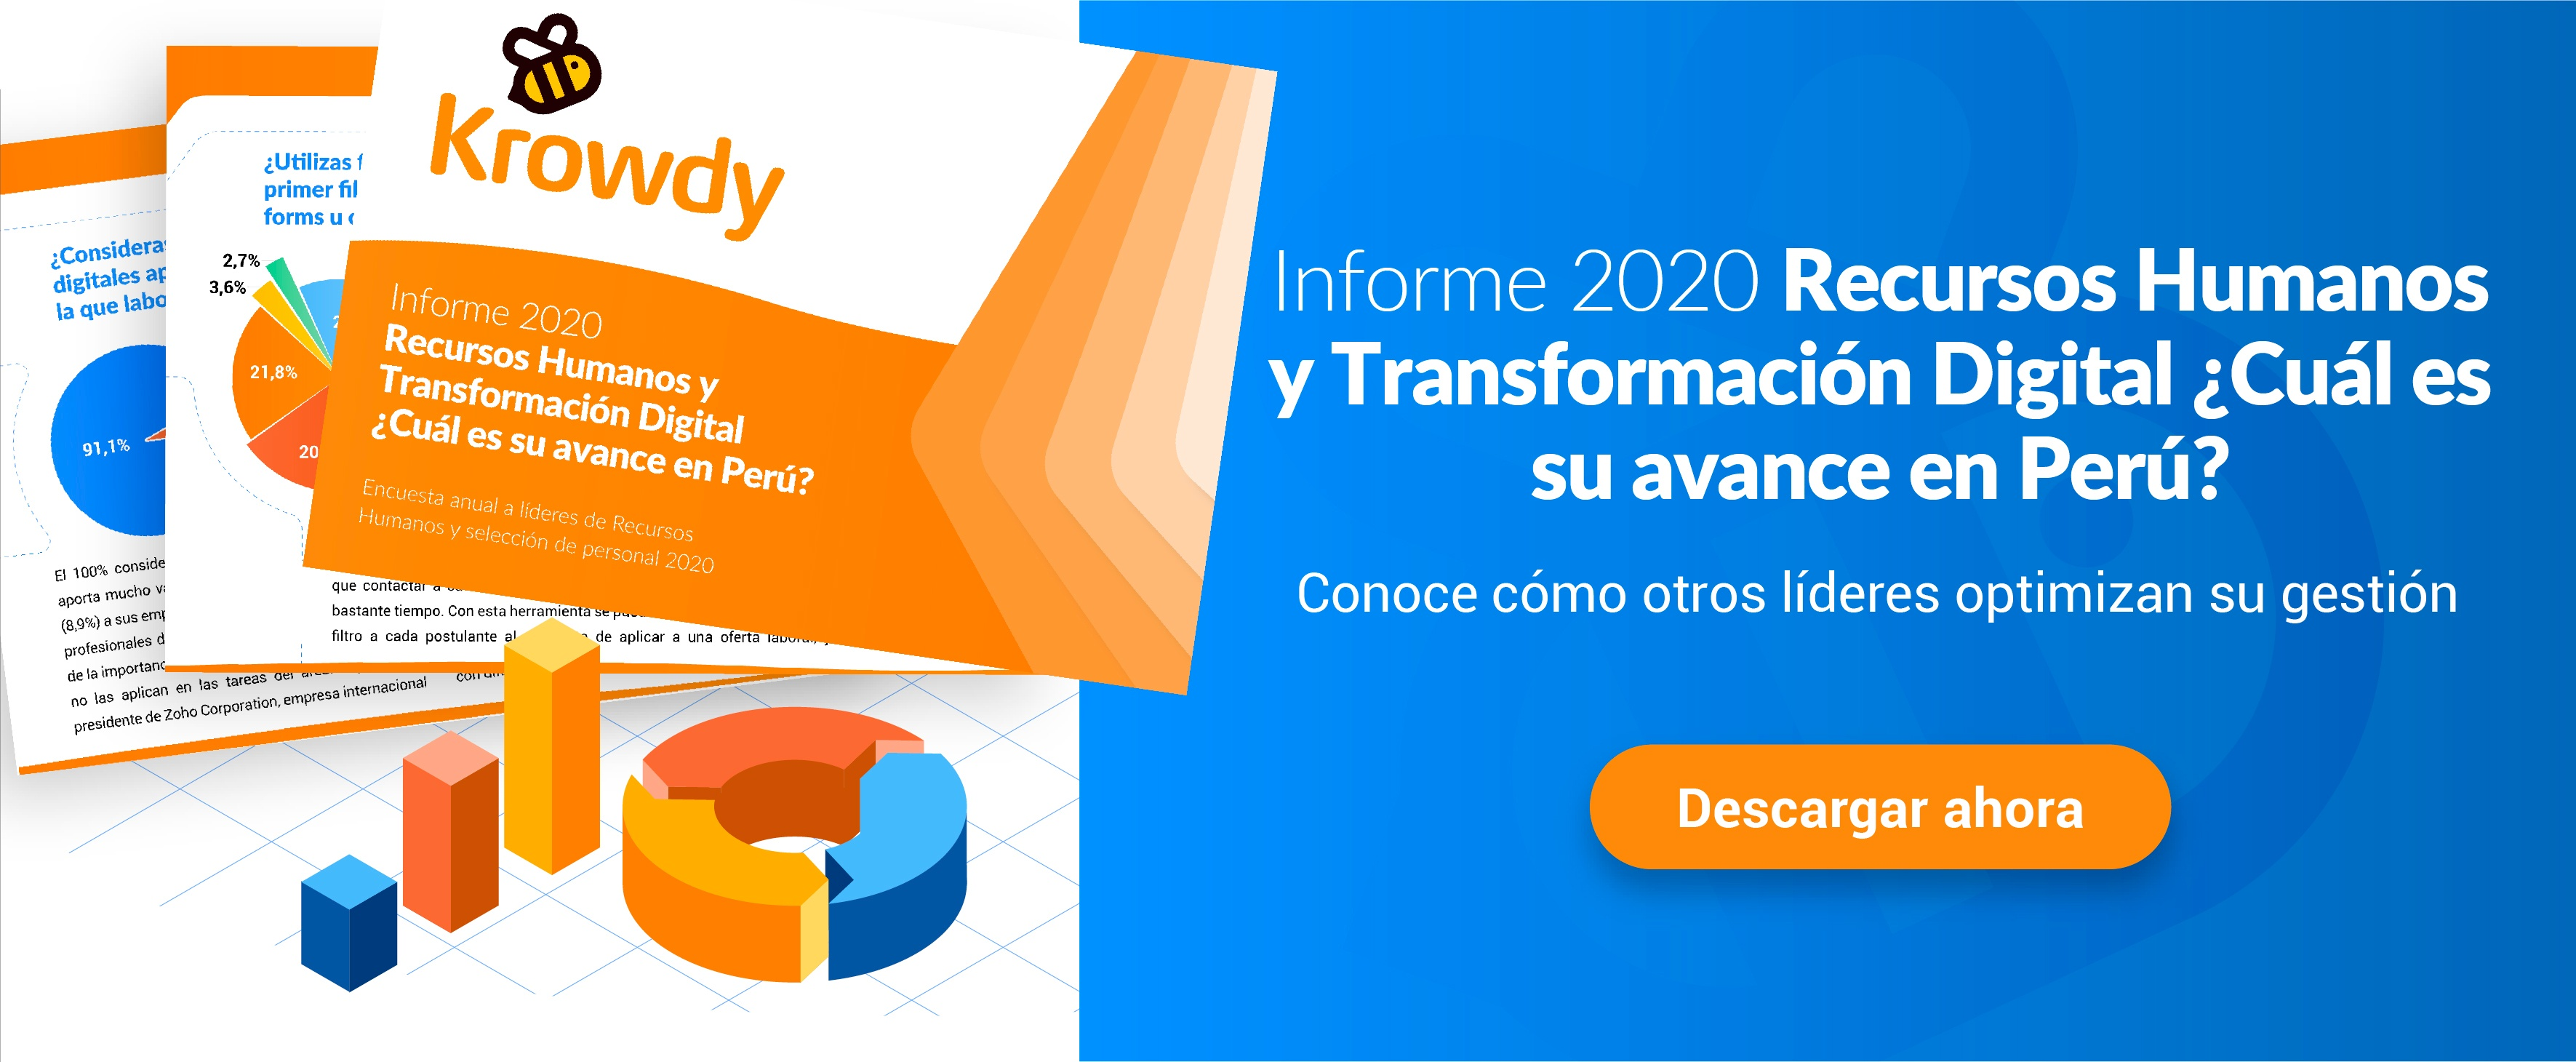 CTA final Informe 2020 Transformación Digital en Recursos Humanos